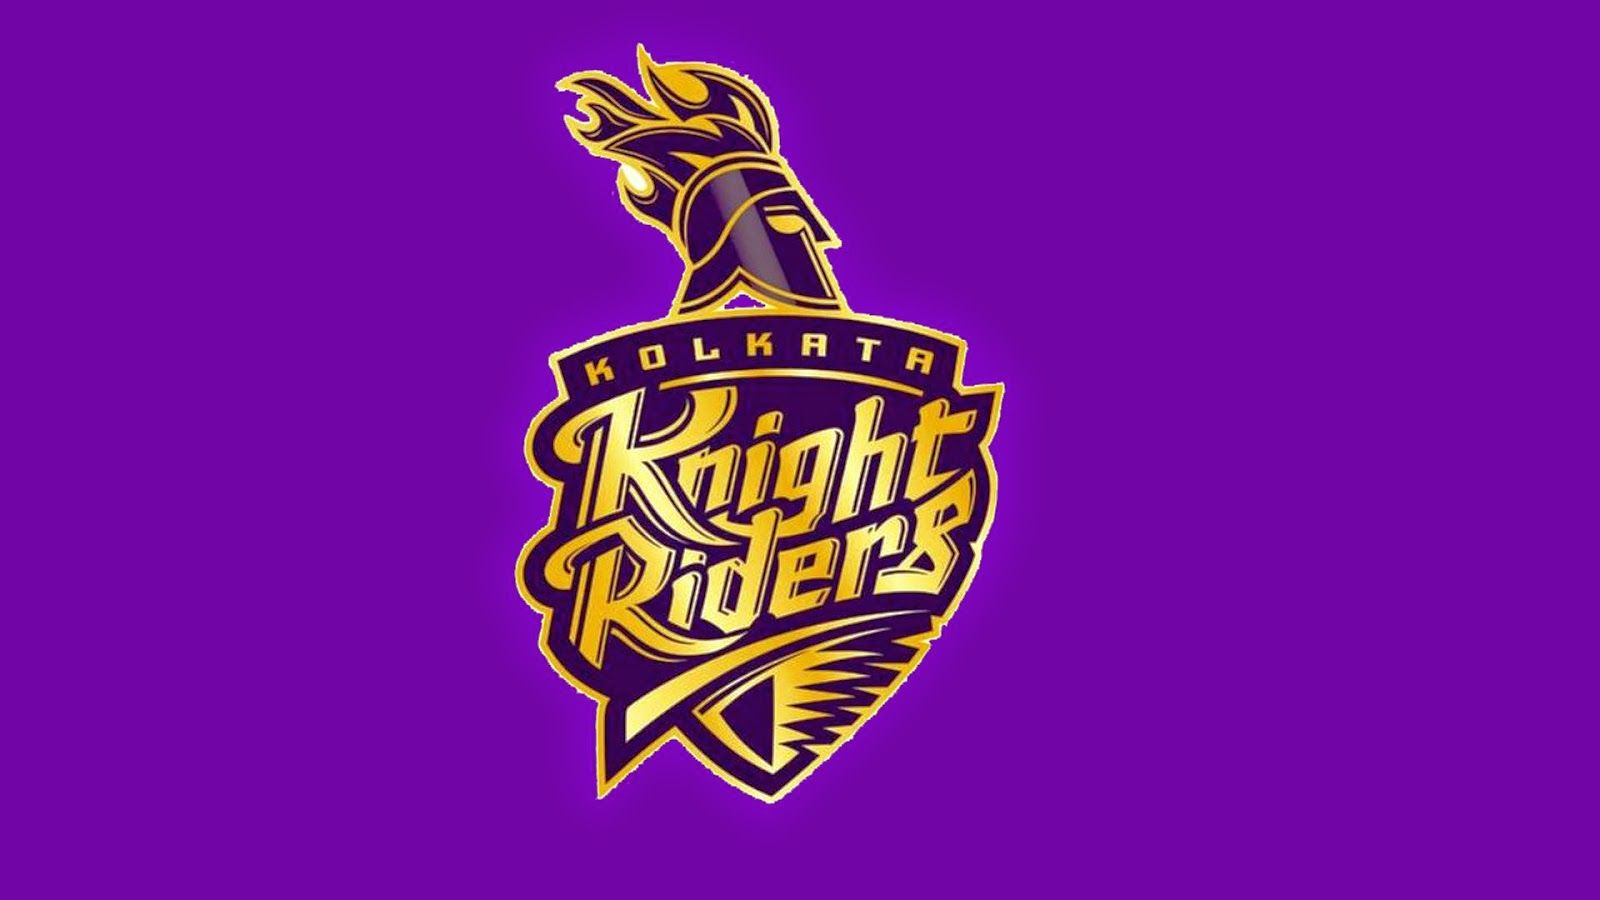 Download IPL Team Wallpapers Logos for Whatsapp DP, Facebook and